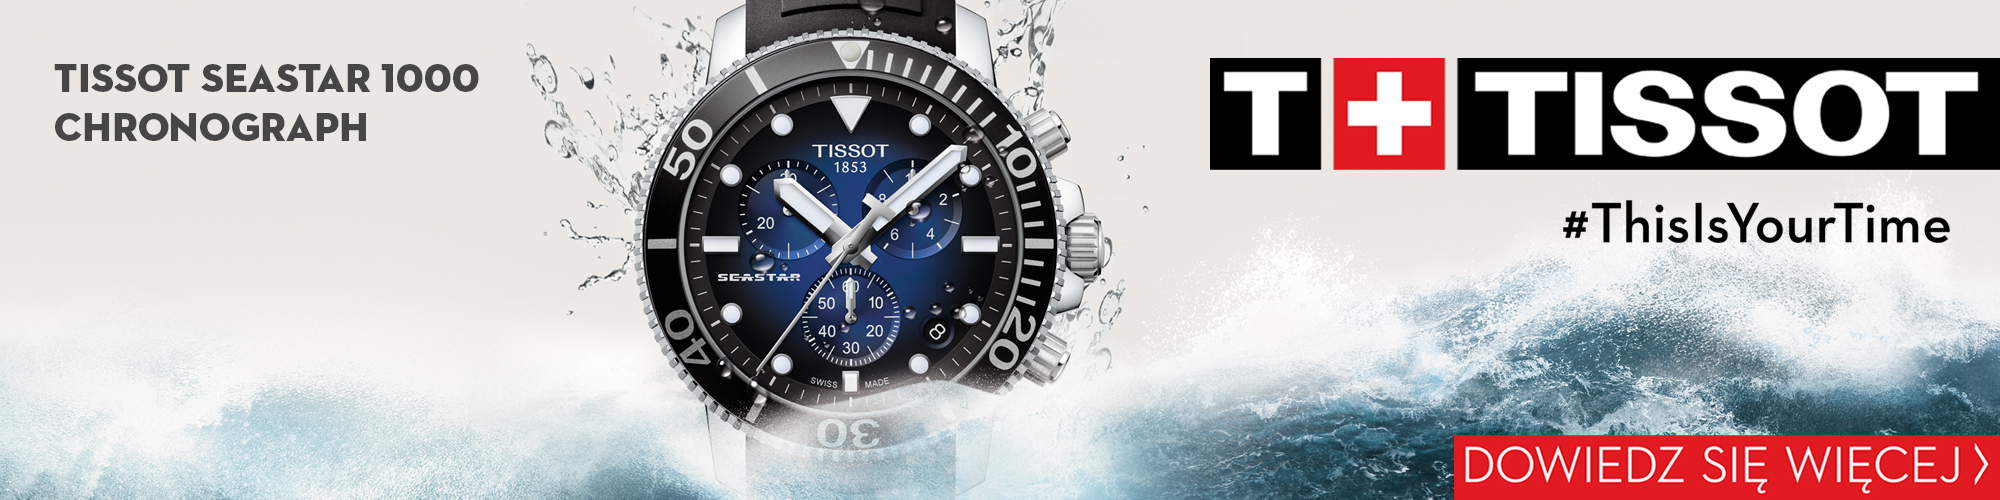 Tissot Seatouch